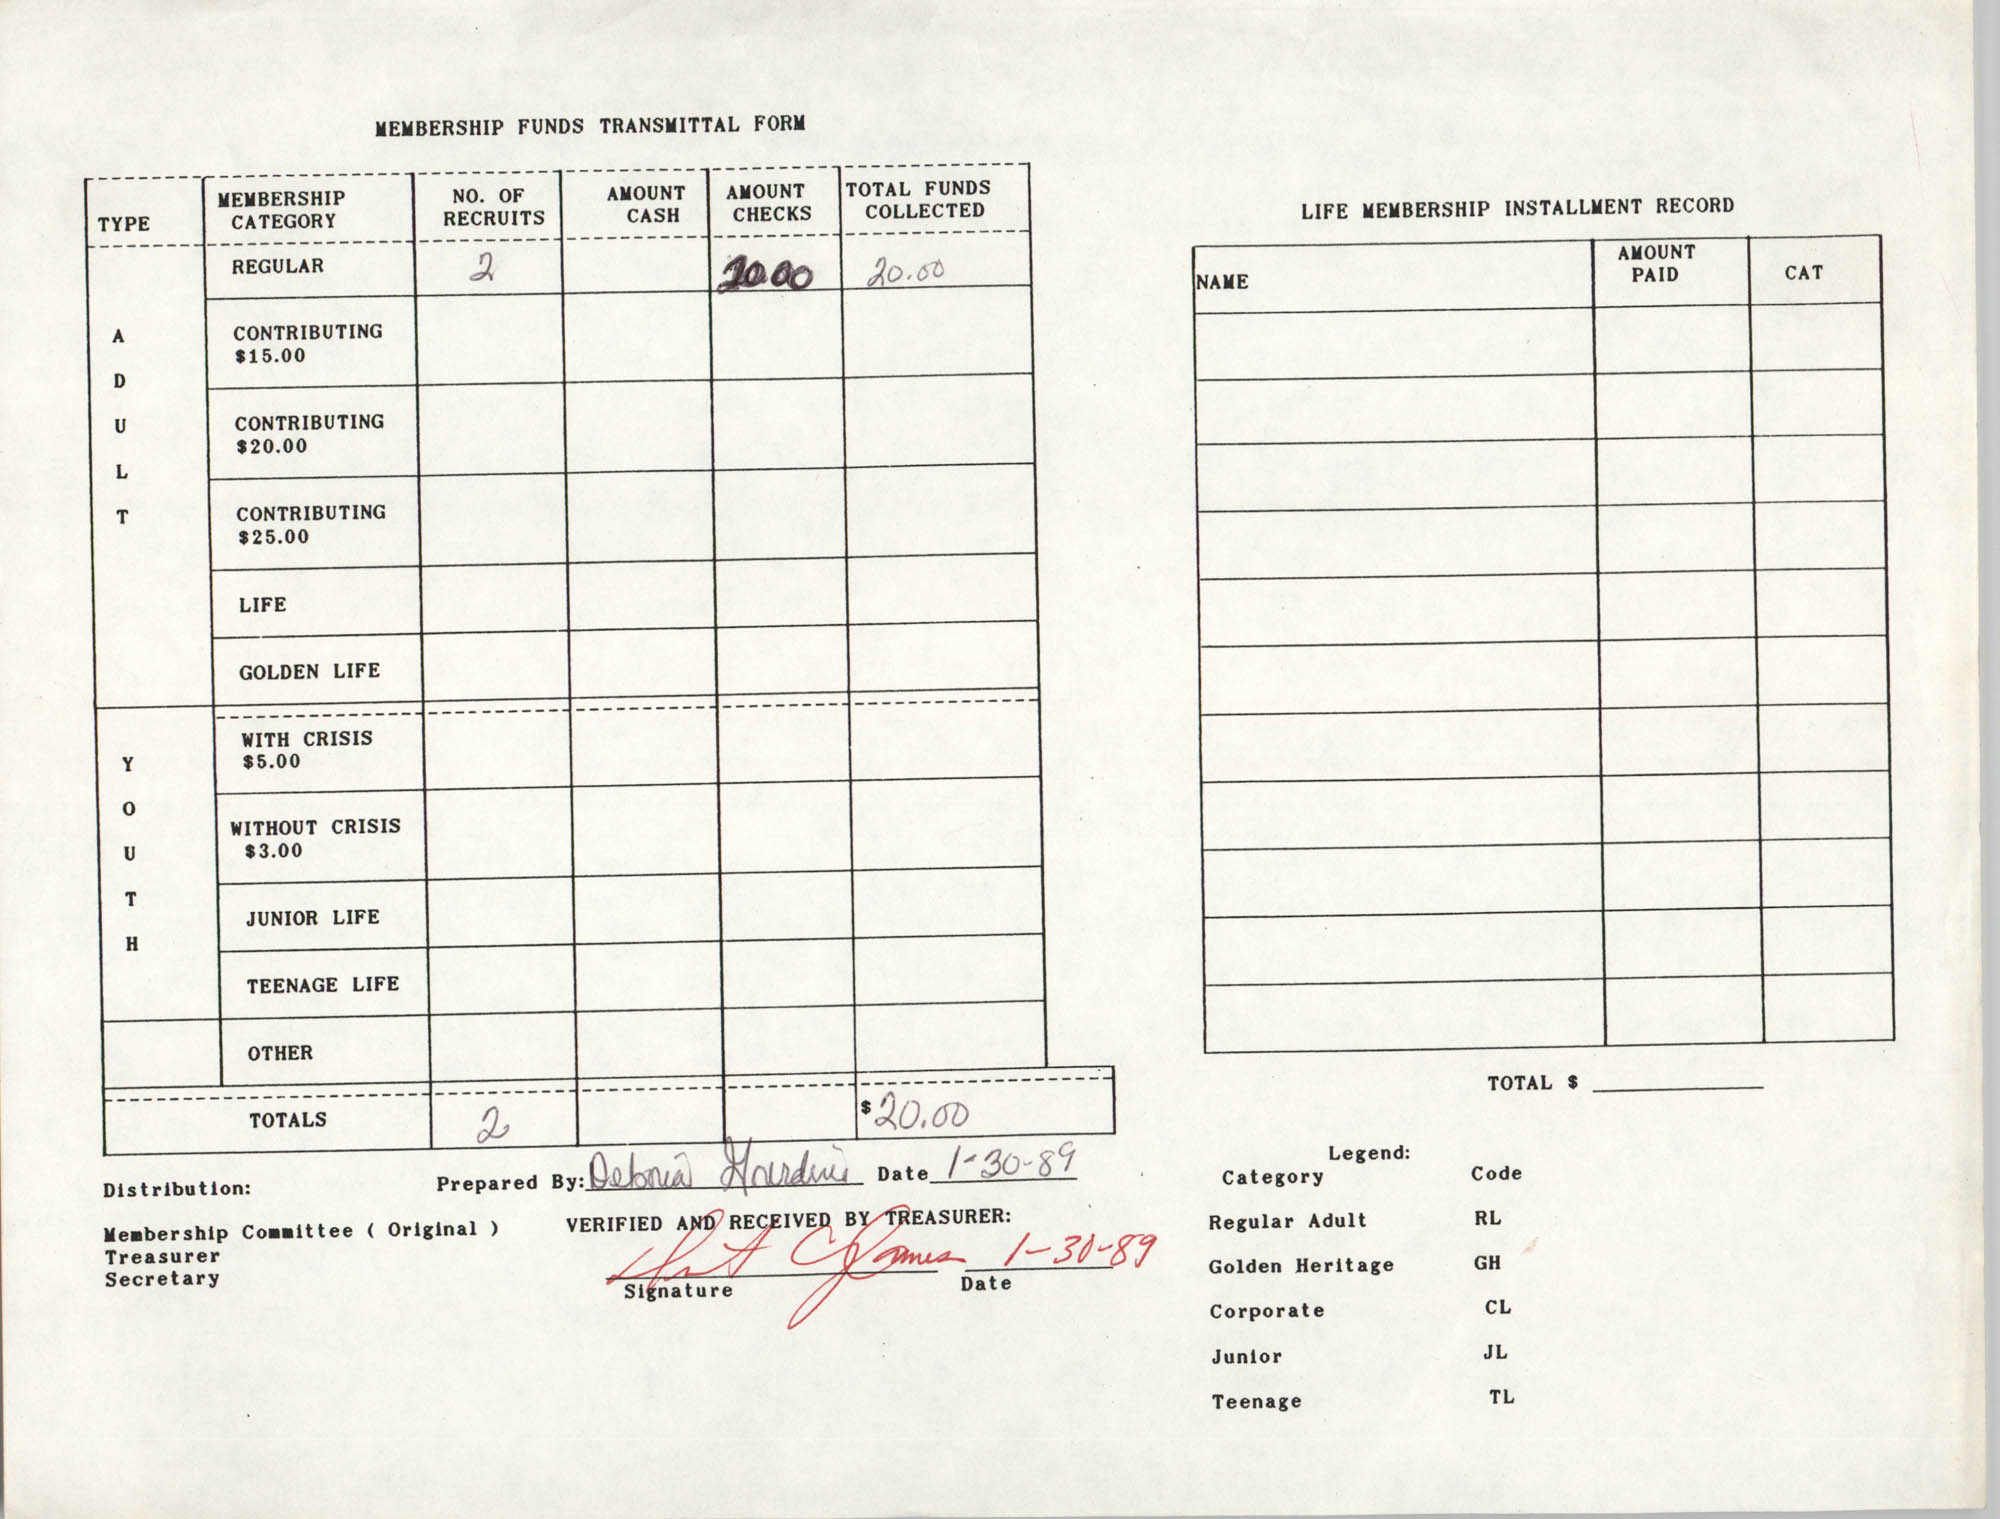 Charleston Branch of the NAACP Funds Transmittal Forms, January 1989, Page 3